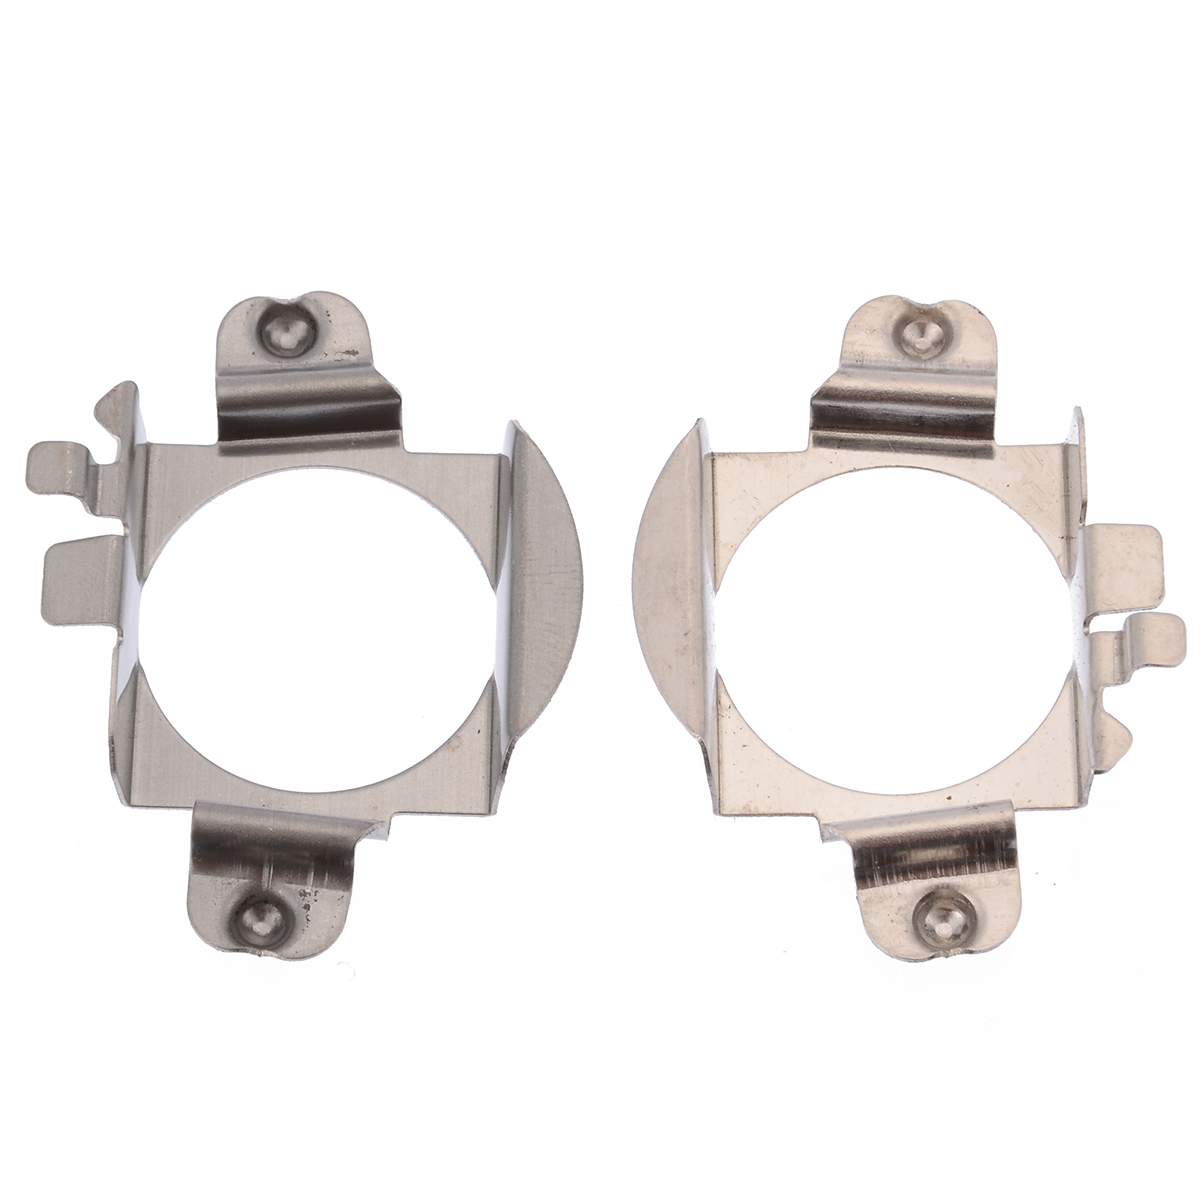 For Ford Edge Mercedes Benz 2pcs H7 LED Headlight Lamp Bulb Adapter Retainer Holder Stainless Steel Support B/C/ML Class Mayitr